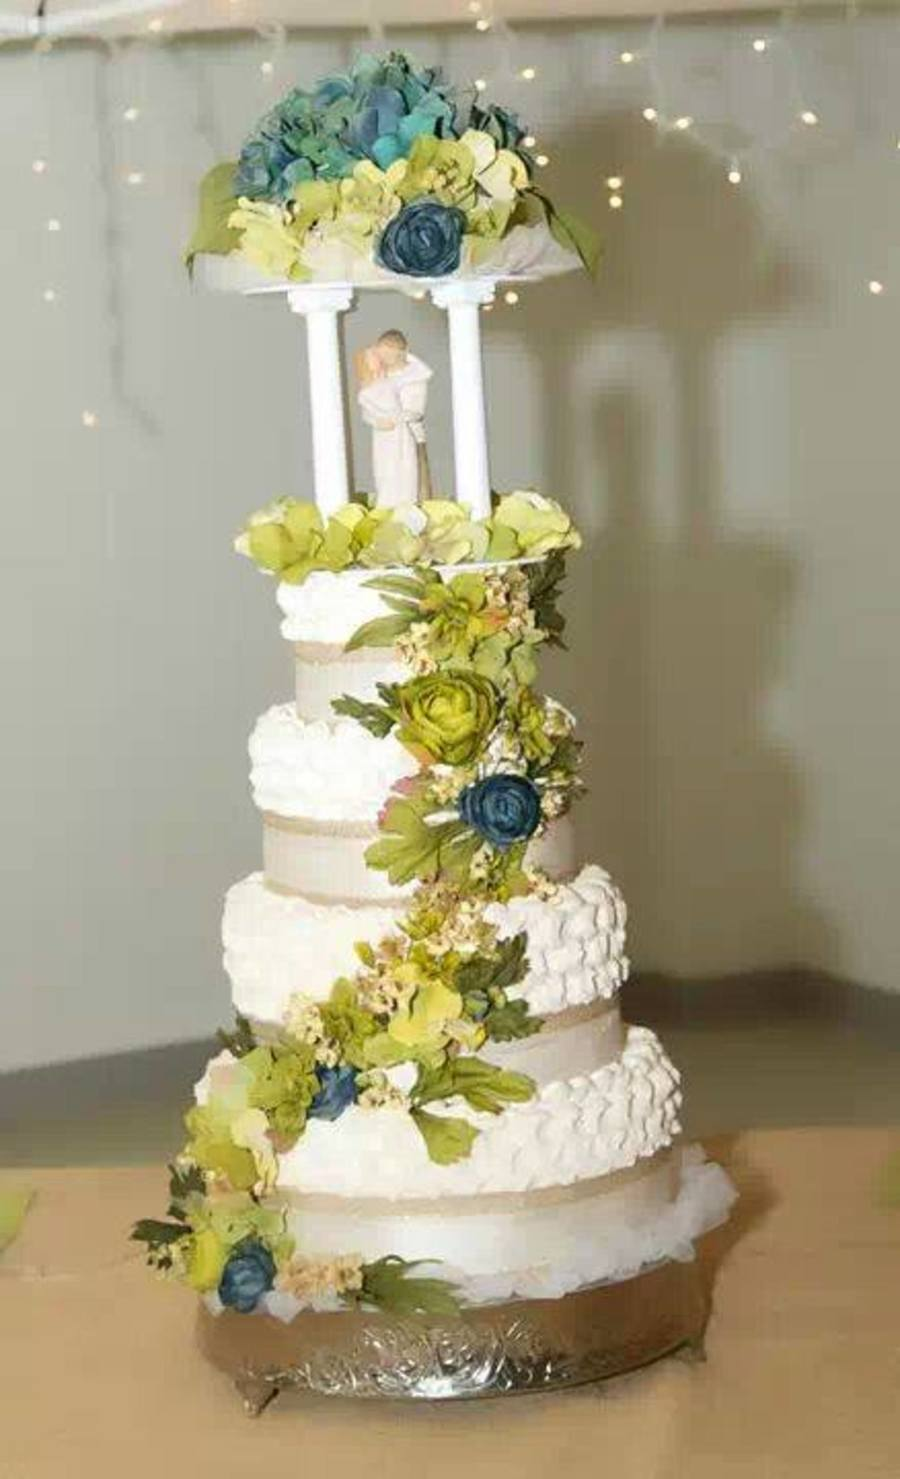 4 tier wedding cake recipe icing for wedding cakes 10403